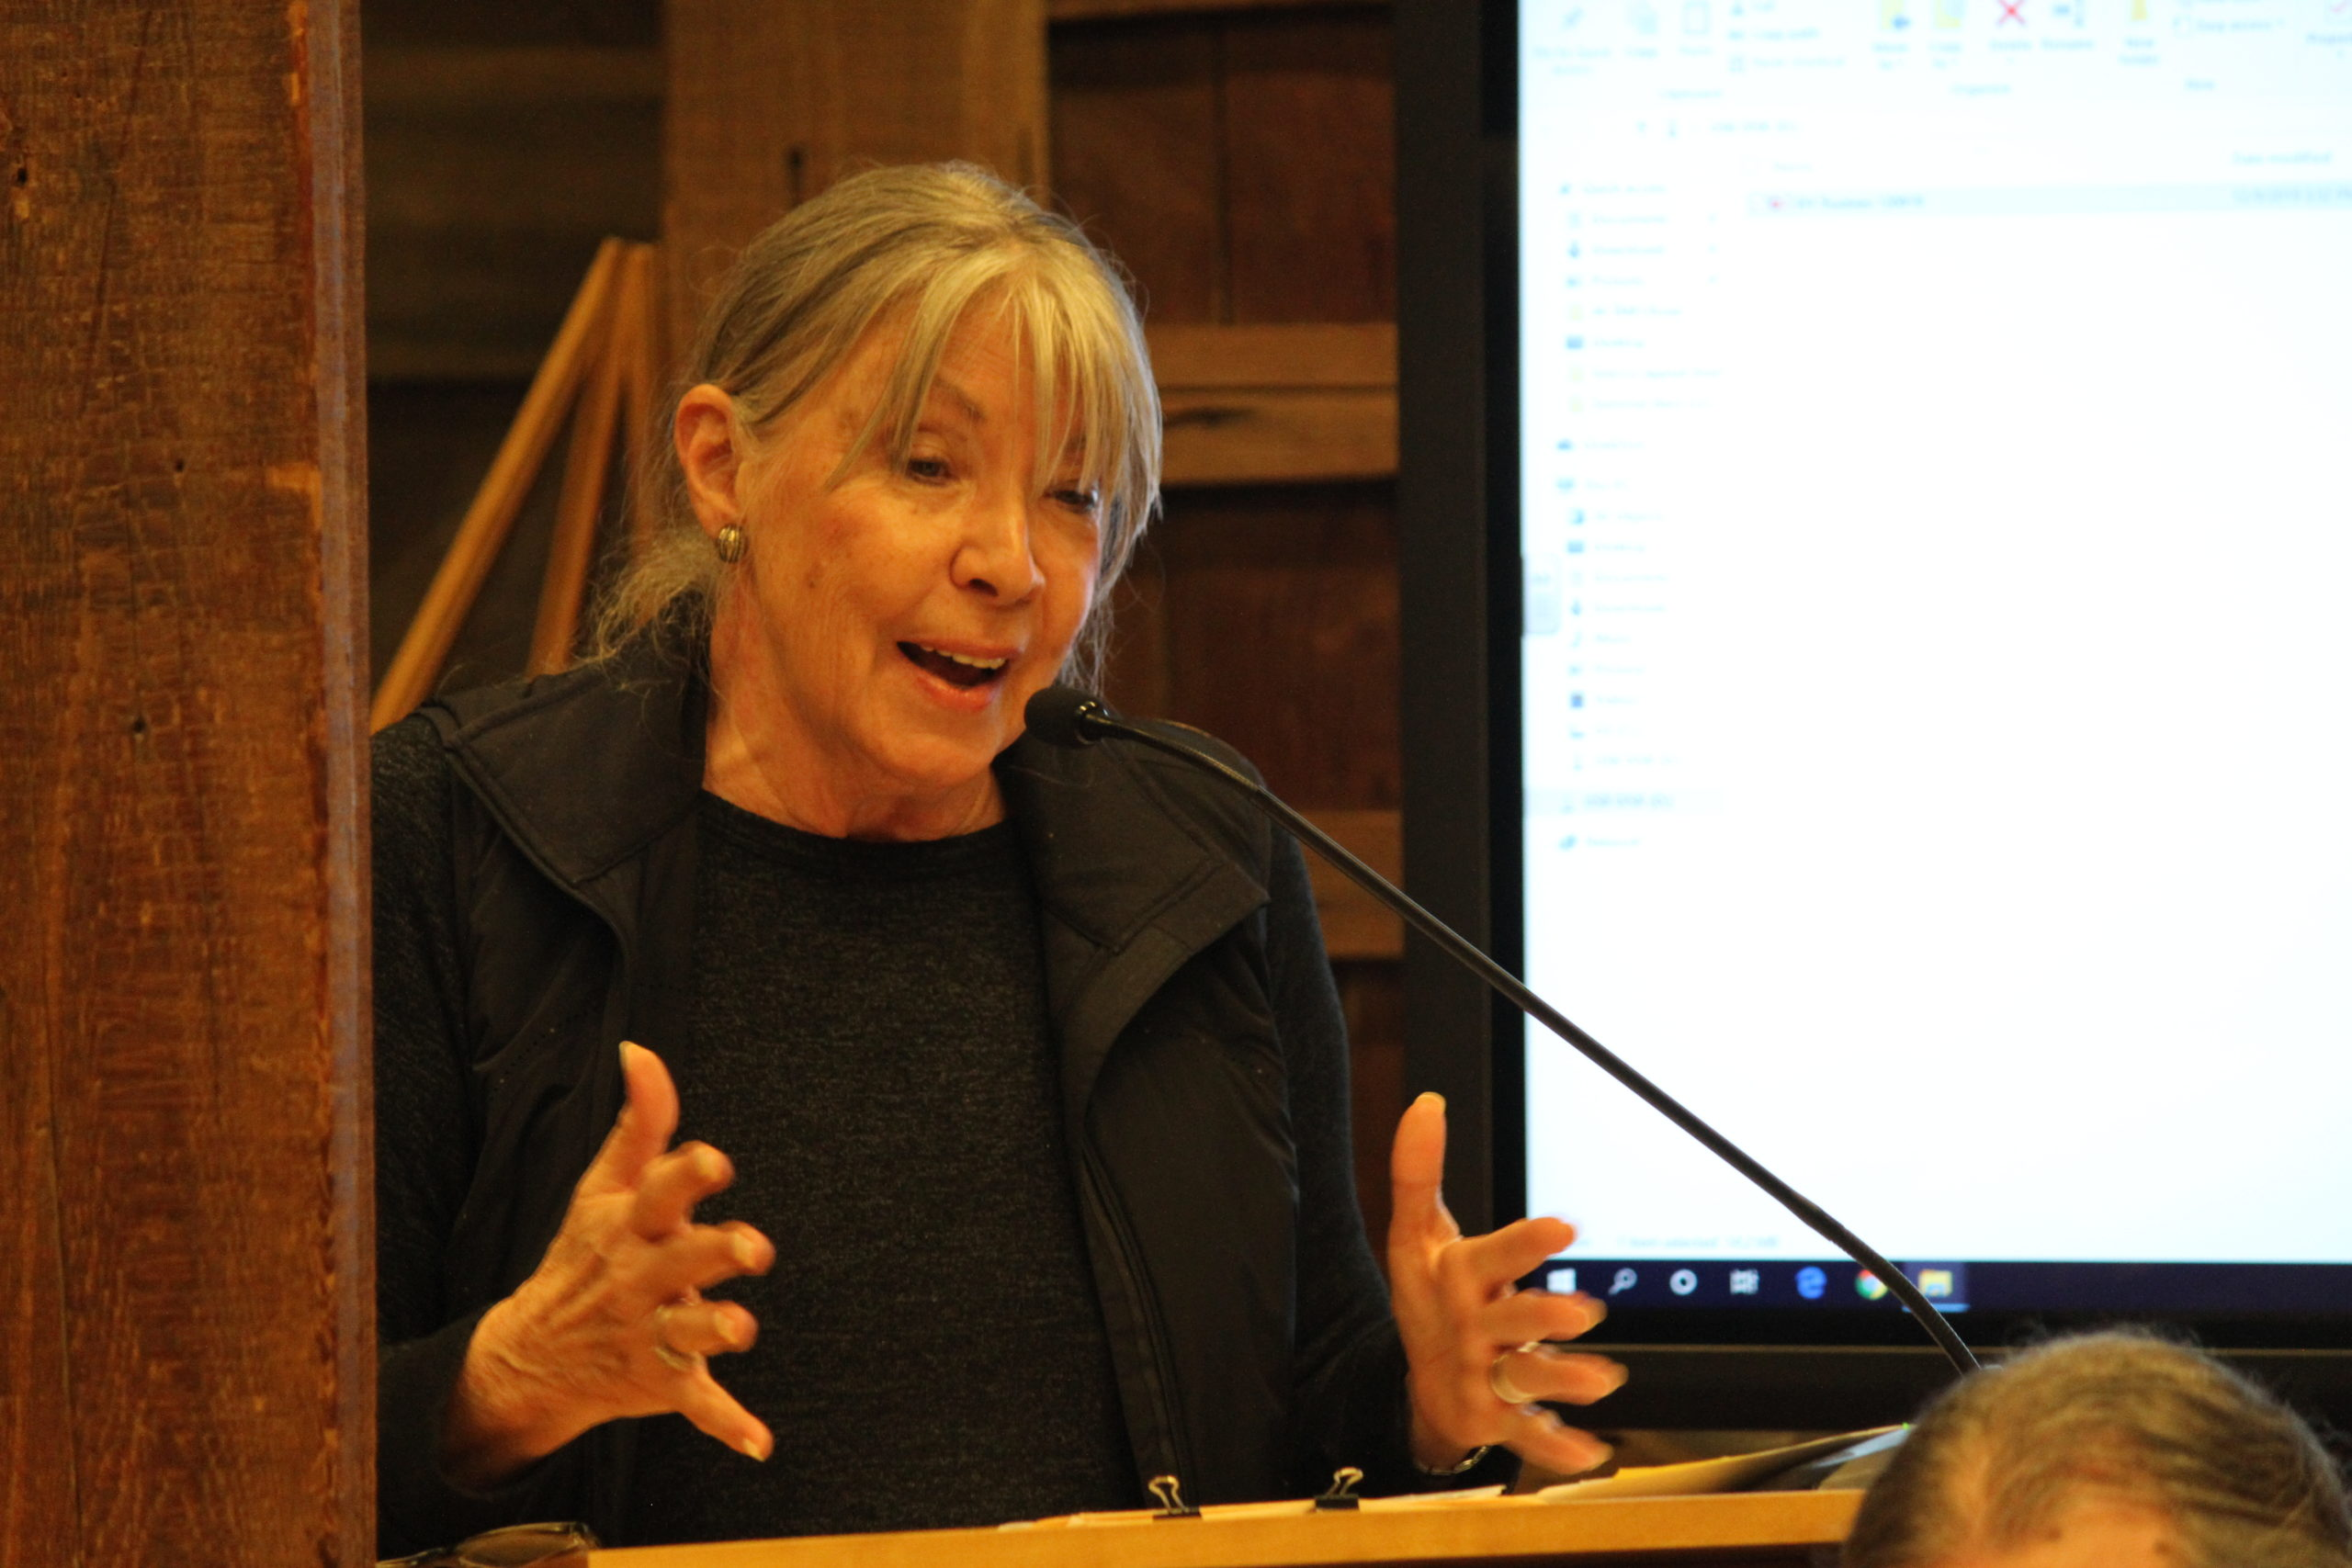 Joan Priore, of the Lazy Point Homeowners Assocaition, has been among the critics of aquaculture in Gardiner Bay.